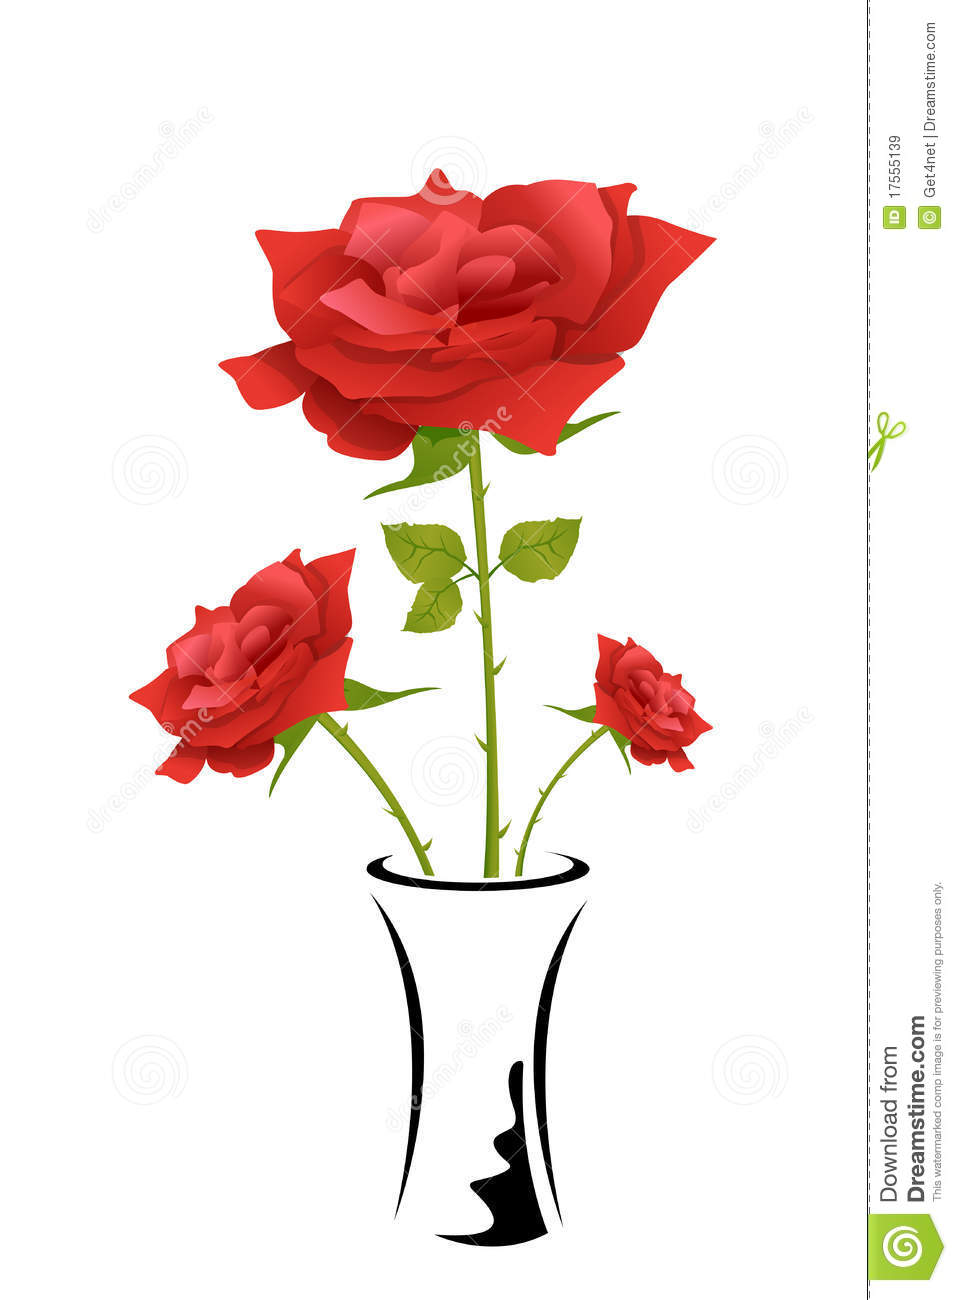 Rose in pot royalty free stock images image 17555139 royalty free stock photo download rose in pot ccuart Image collections